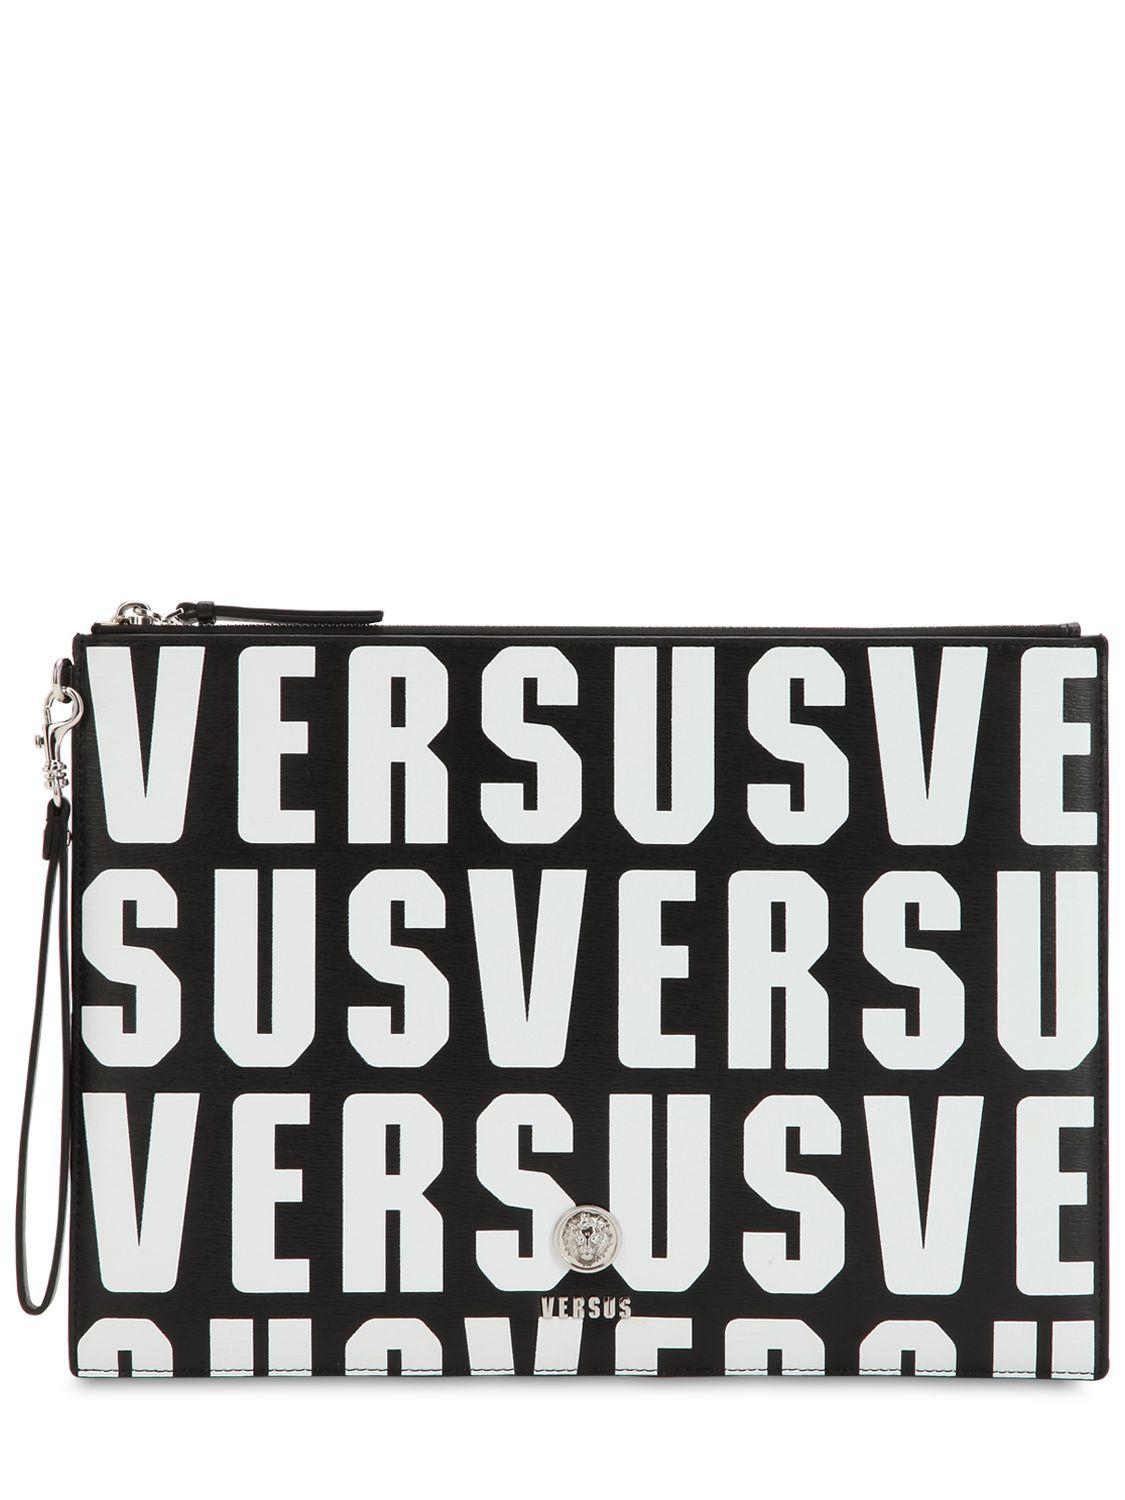 Versus LETTERING PRINTED TEXTURED LEATHER POUCH Free Shipping Really Clearance Shop For wzPKnKWL0N